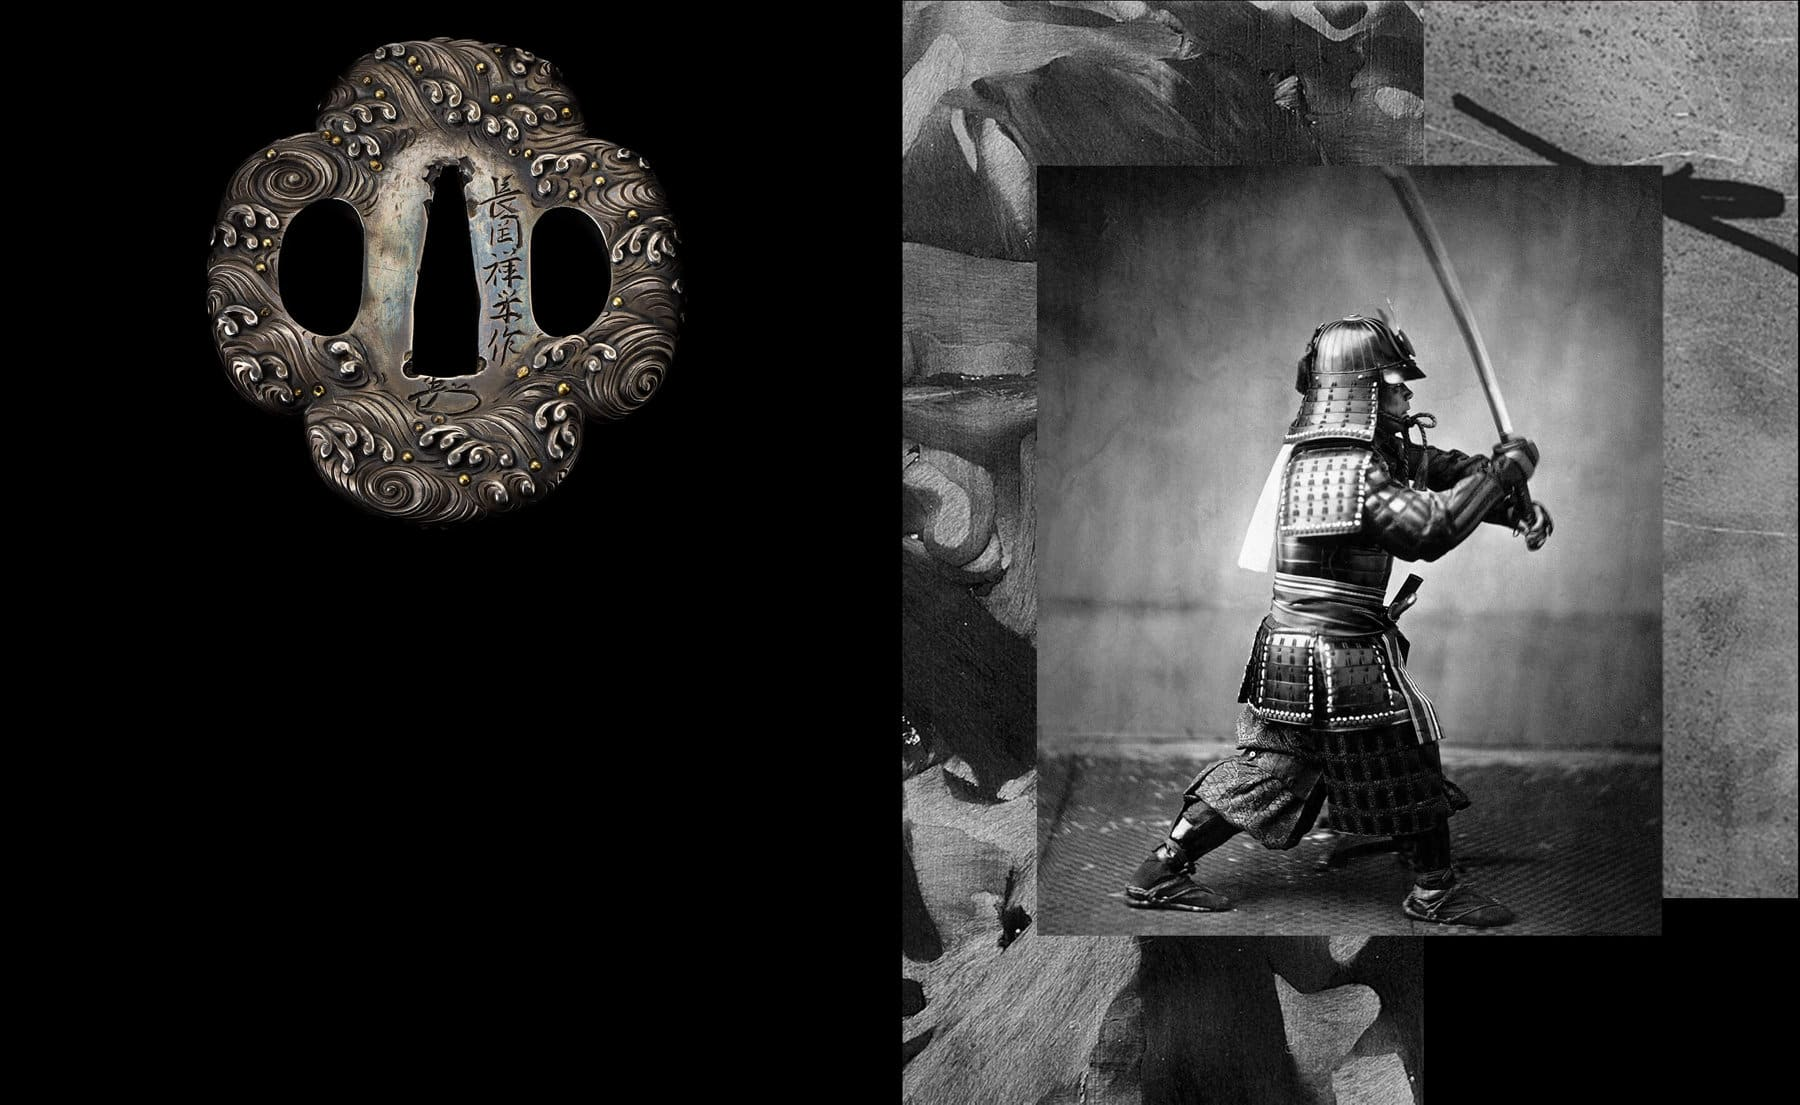 A photo collage juxtaposes a color photo of an antique Japanese tsuba with a color photo of forged carbon and a black-and-white photo of a samurai warrior. On the left, the tsuba is shot against a black background. On the right, the samurai warrior wields a sword and is dressed in armor. A close-up of forged carbon creates a border around the samurai image.